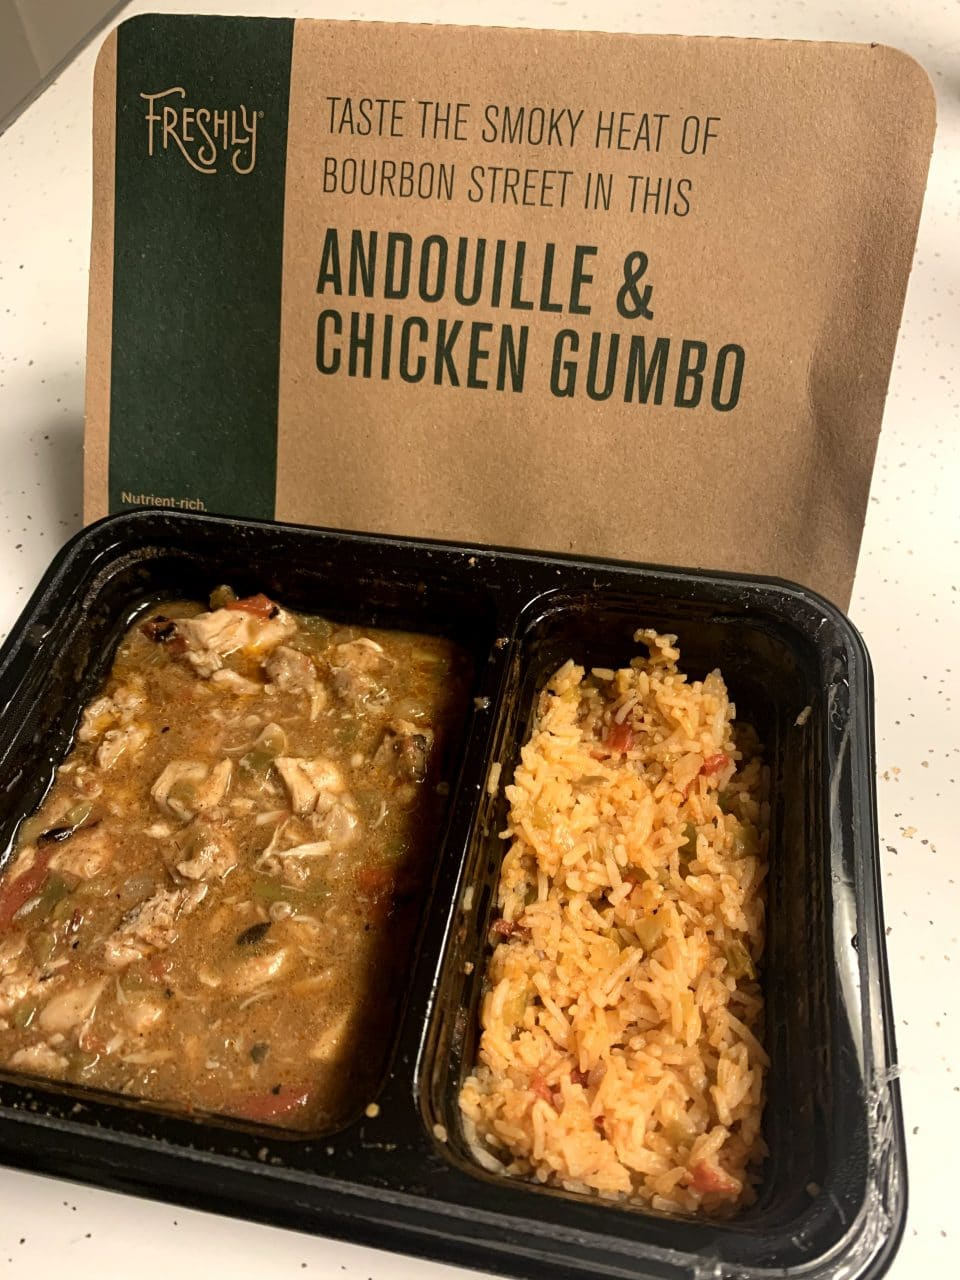 Andouille & Chicken Gumbo - Freshly